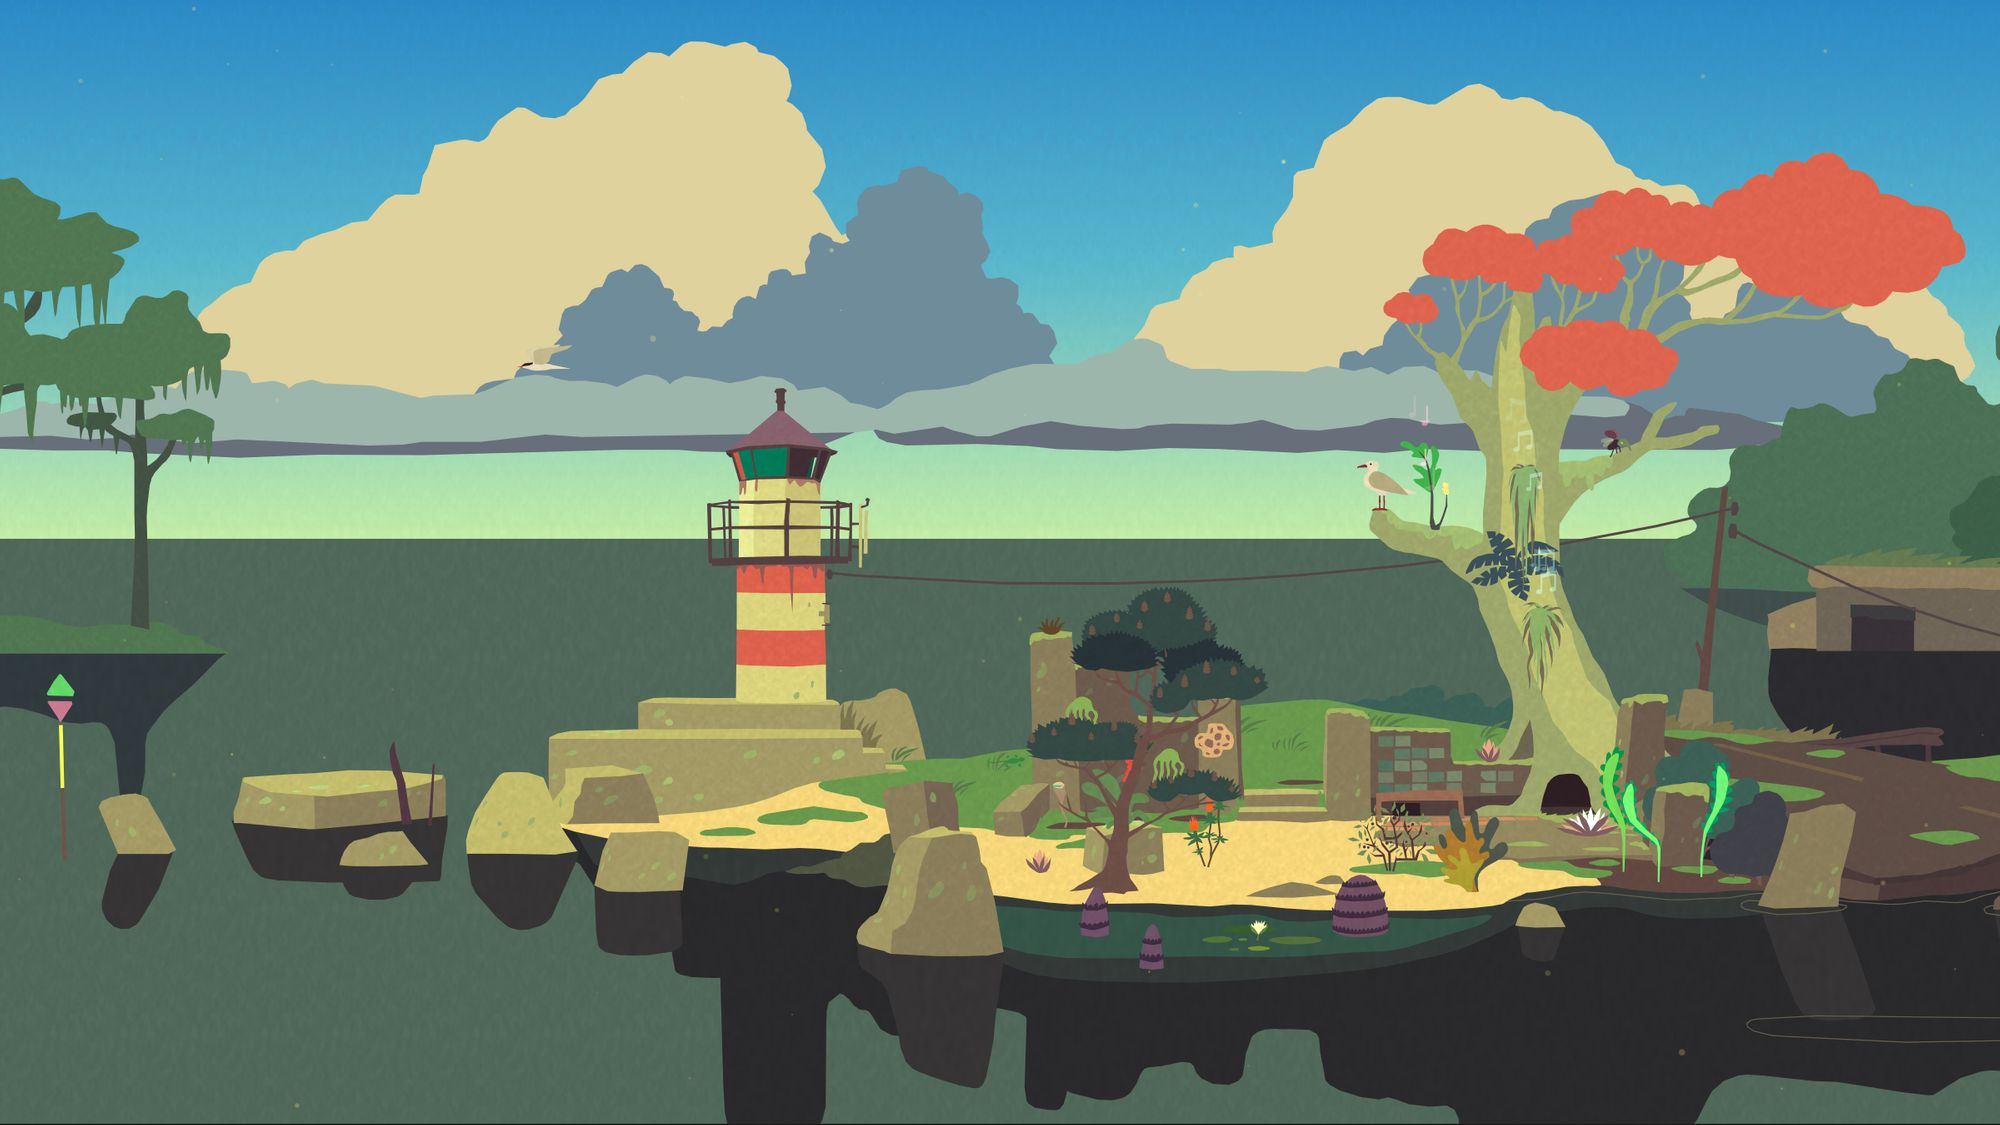 A screen shot from Mutazione - a pier with a run-down lighthouse, a beach, and a tall red-leaved tree. The time of day is early evening, and the beach holds a sandy garden, some plants growing in the water, others on the walls, tree, and sandy soil.